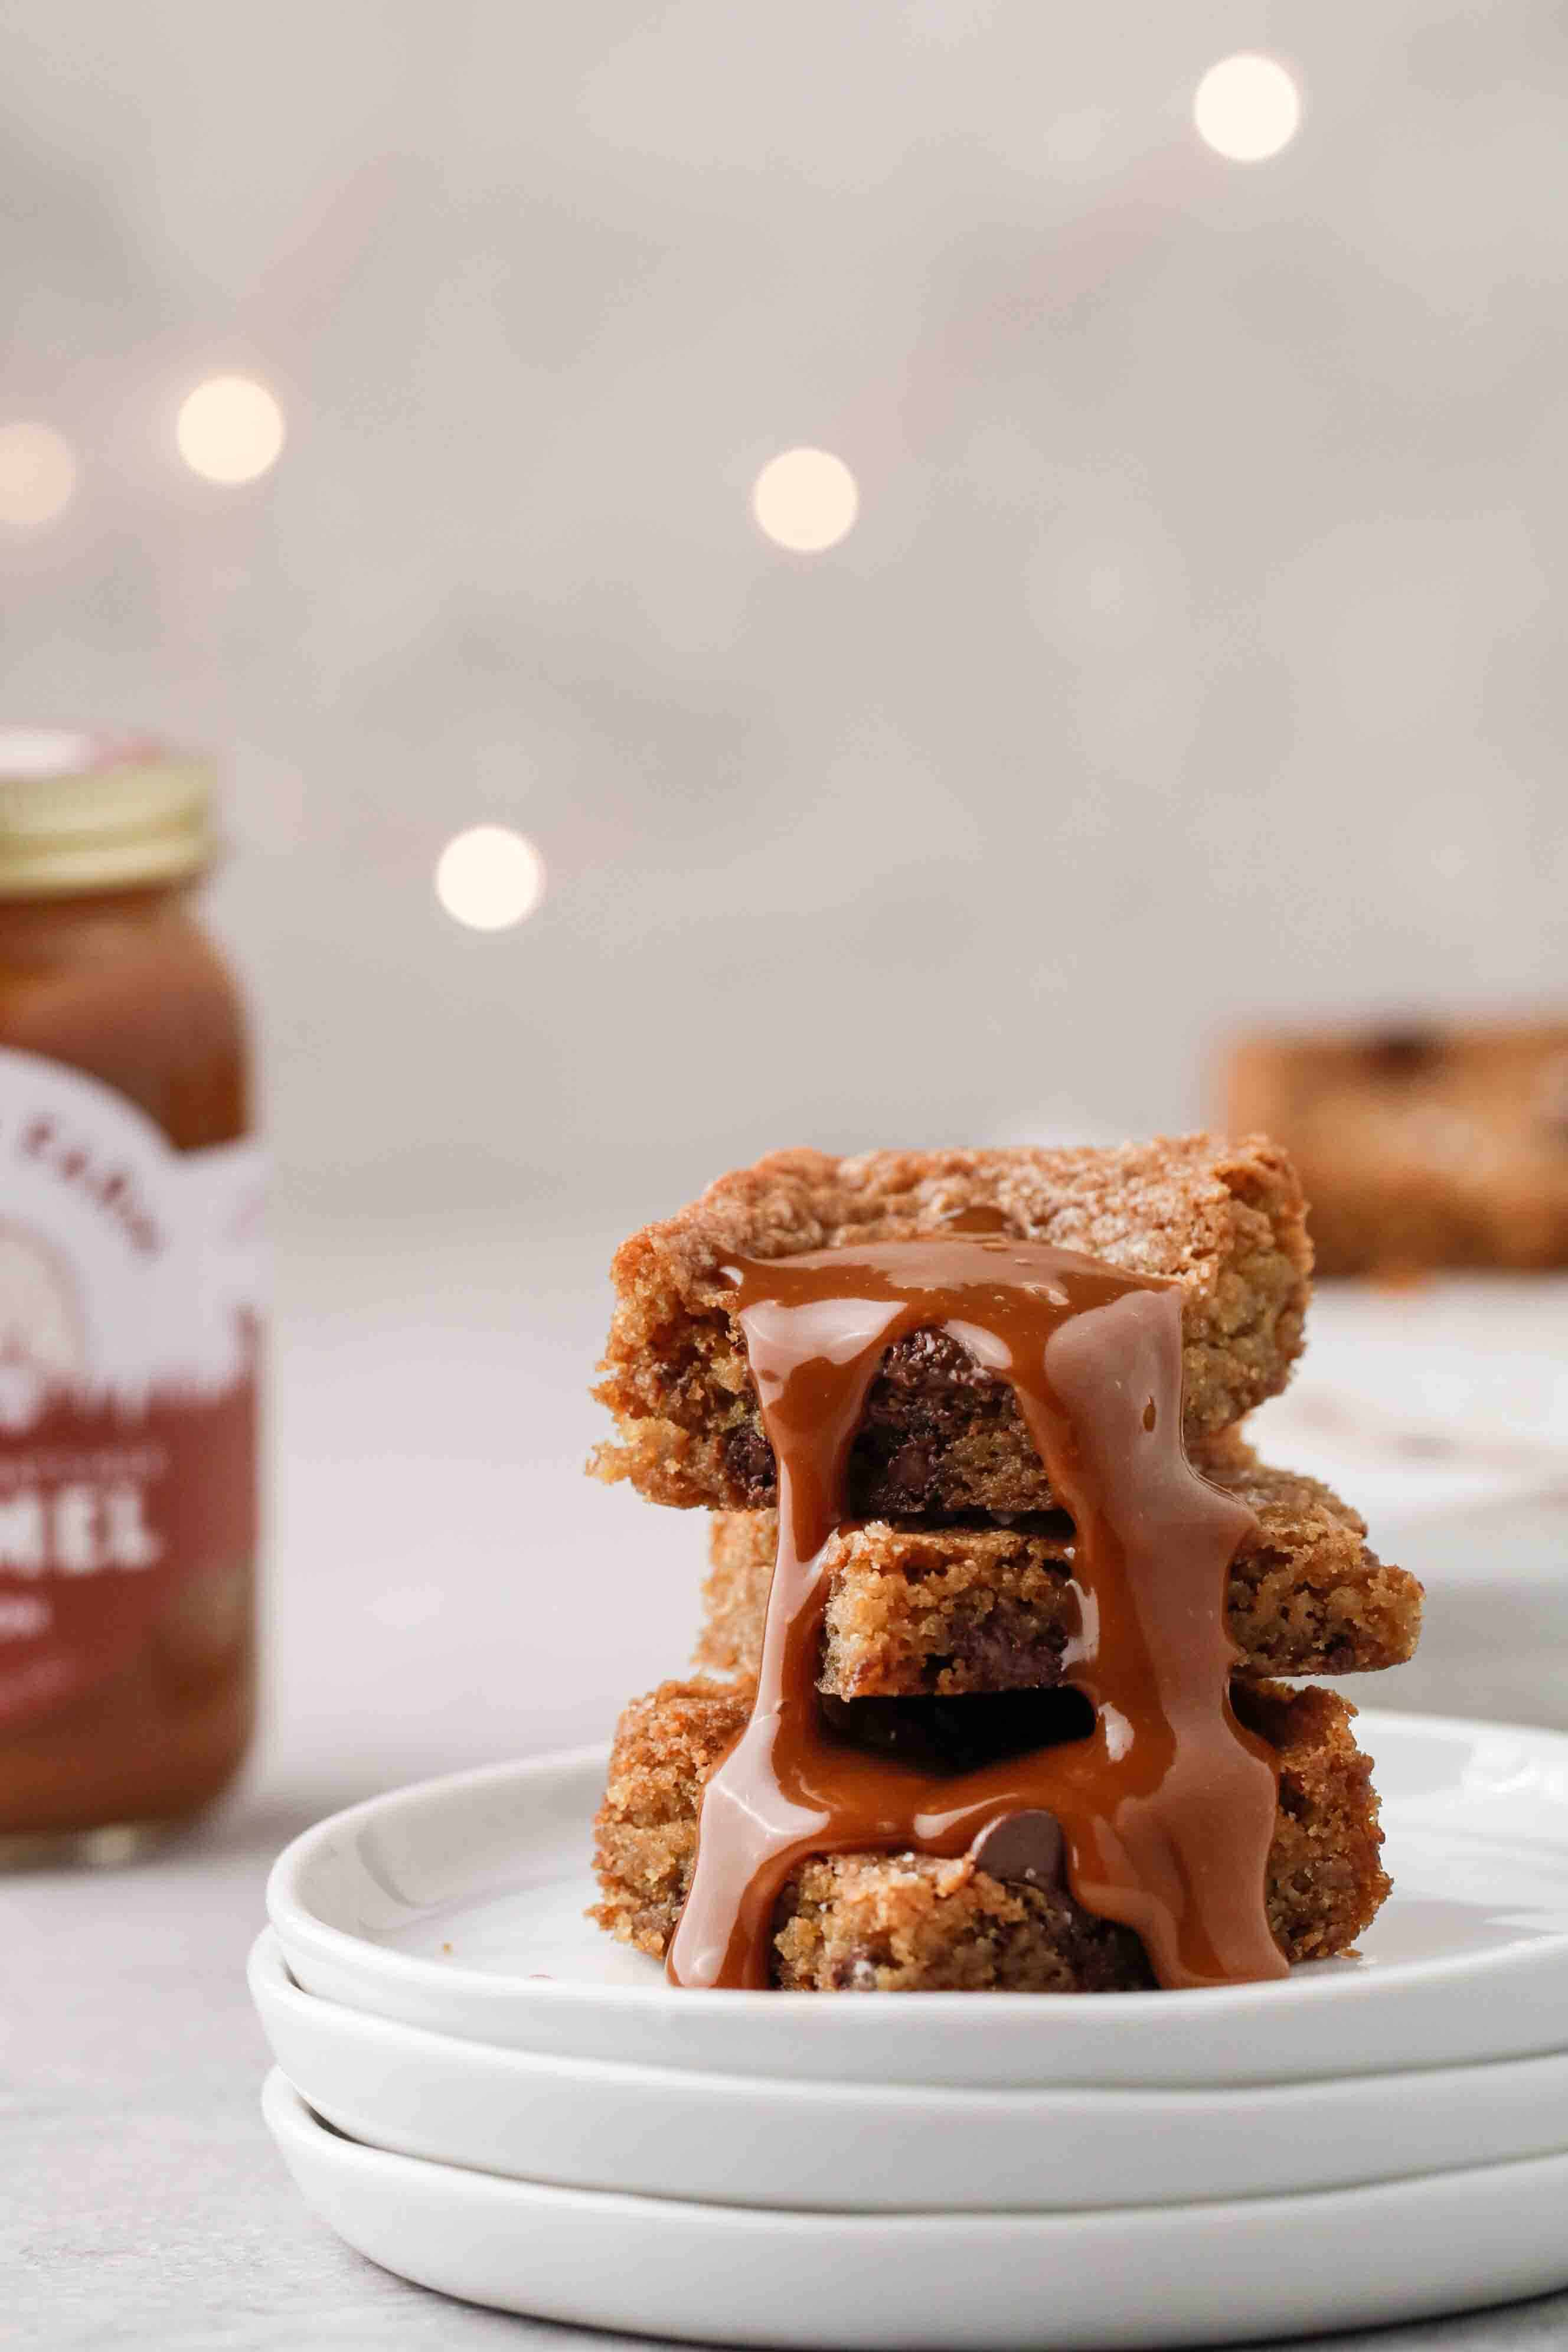 Chocolate chip cookie bars drizzled with caramel